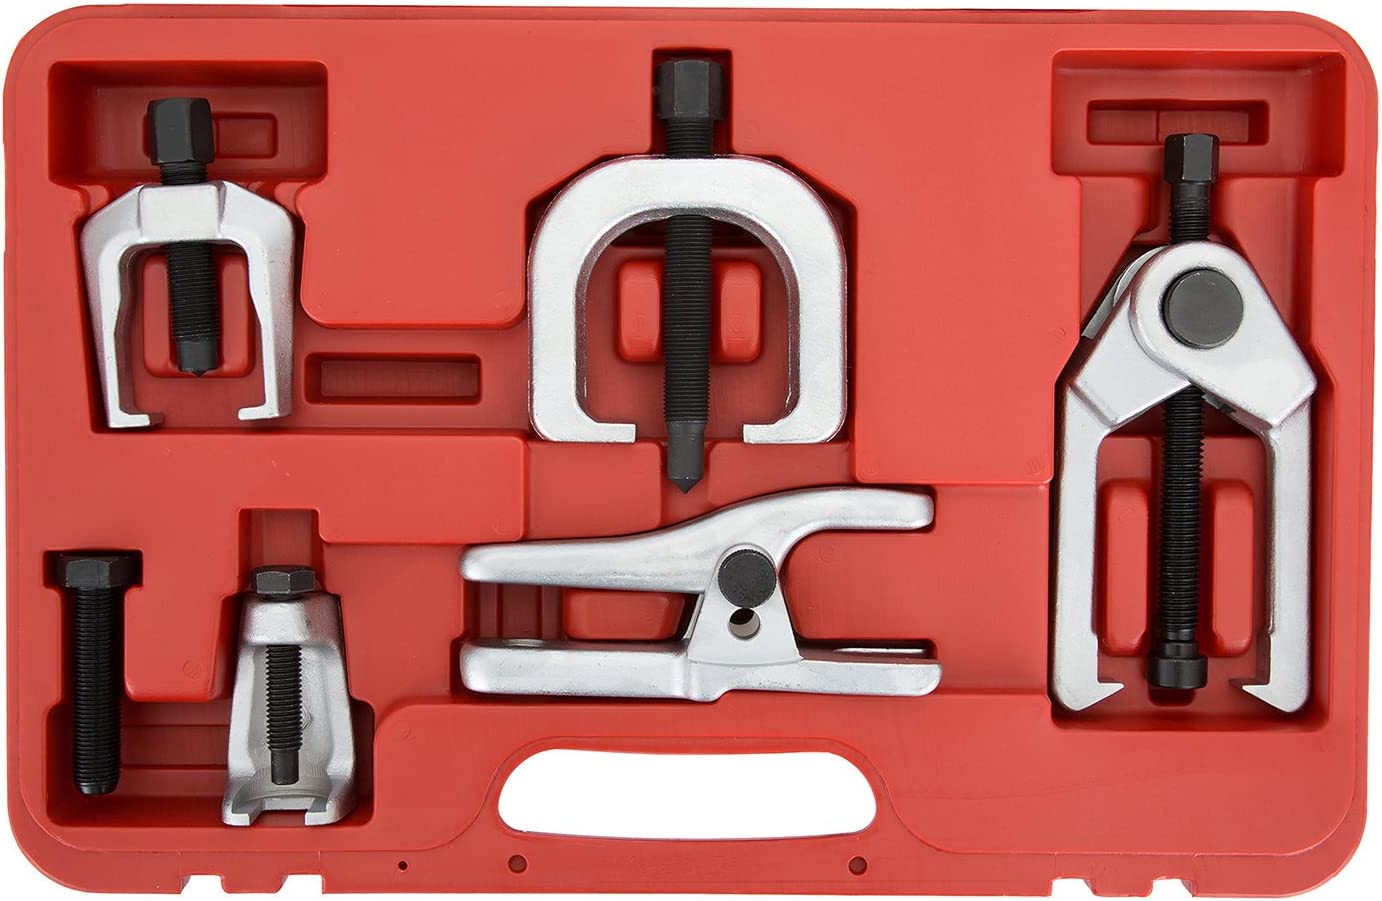 Amazon Com Oemtools 27181 Front End Service Kit Home Improvement Performance tool dead blow hammers. oemtools 27181 front end service kit